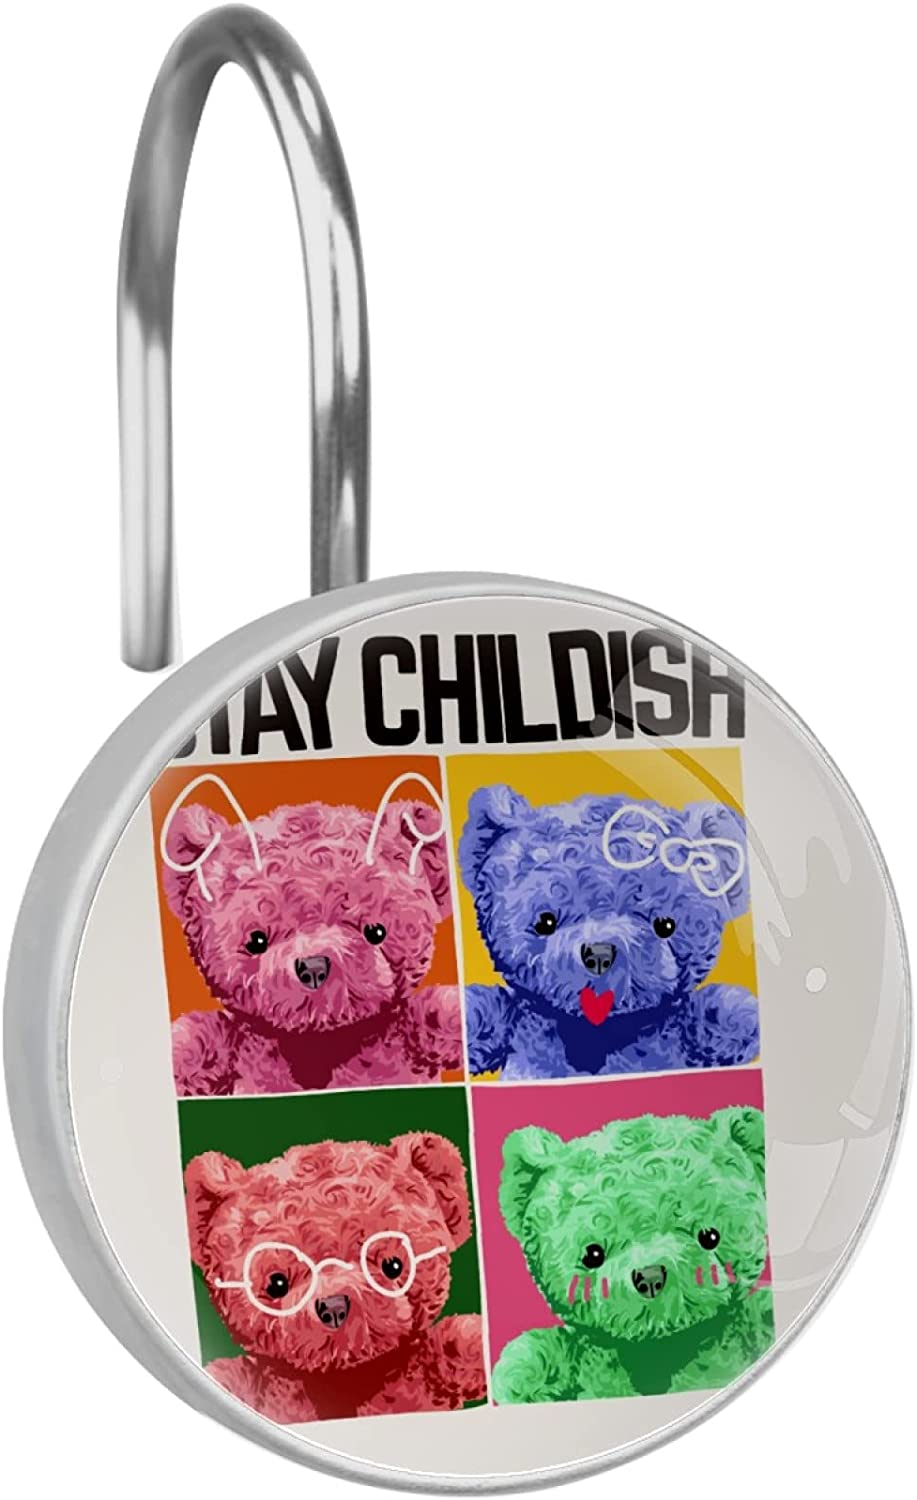 Genuine Free Shipping Dealing full price reduction Stay Childish Slogan with Colorful Bear Toy in Illu Frame Square